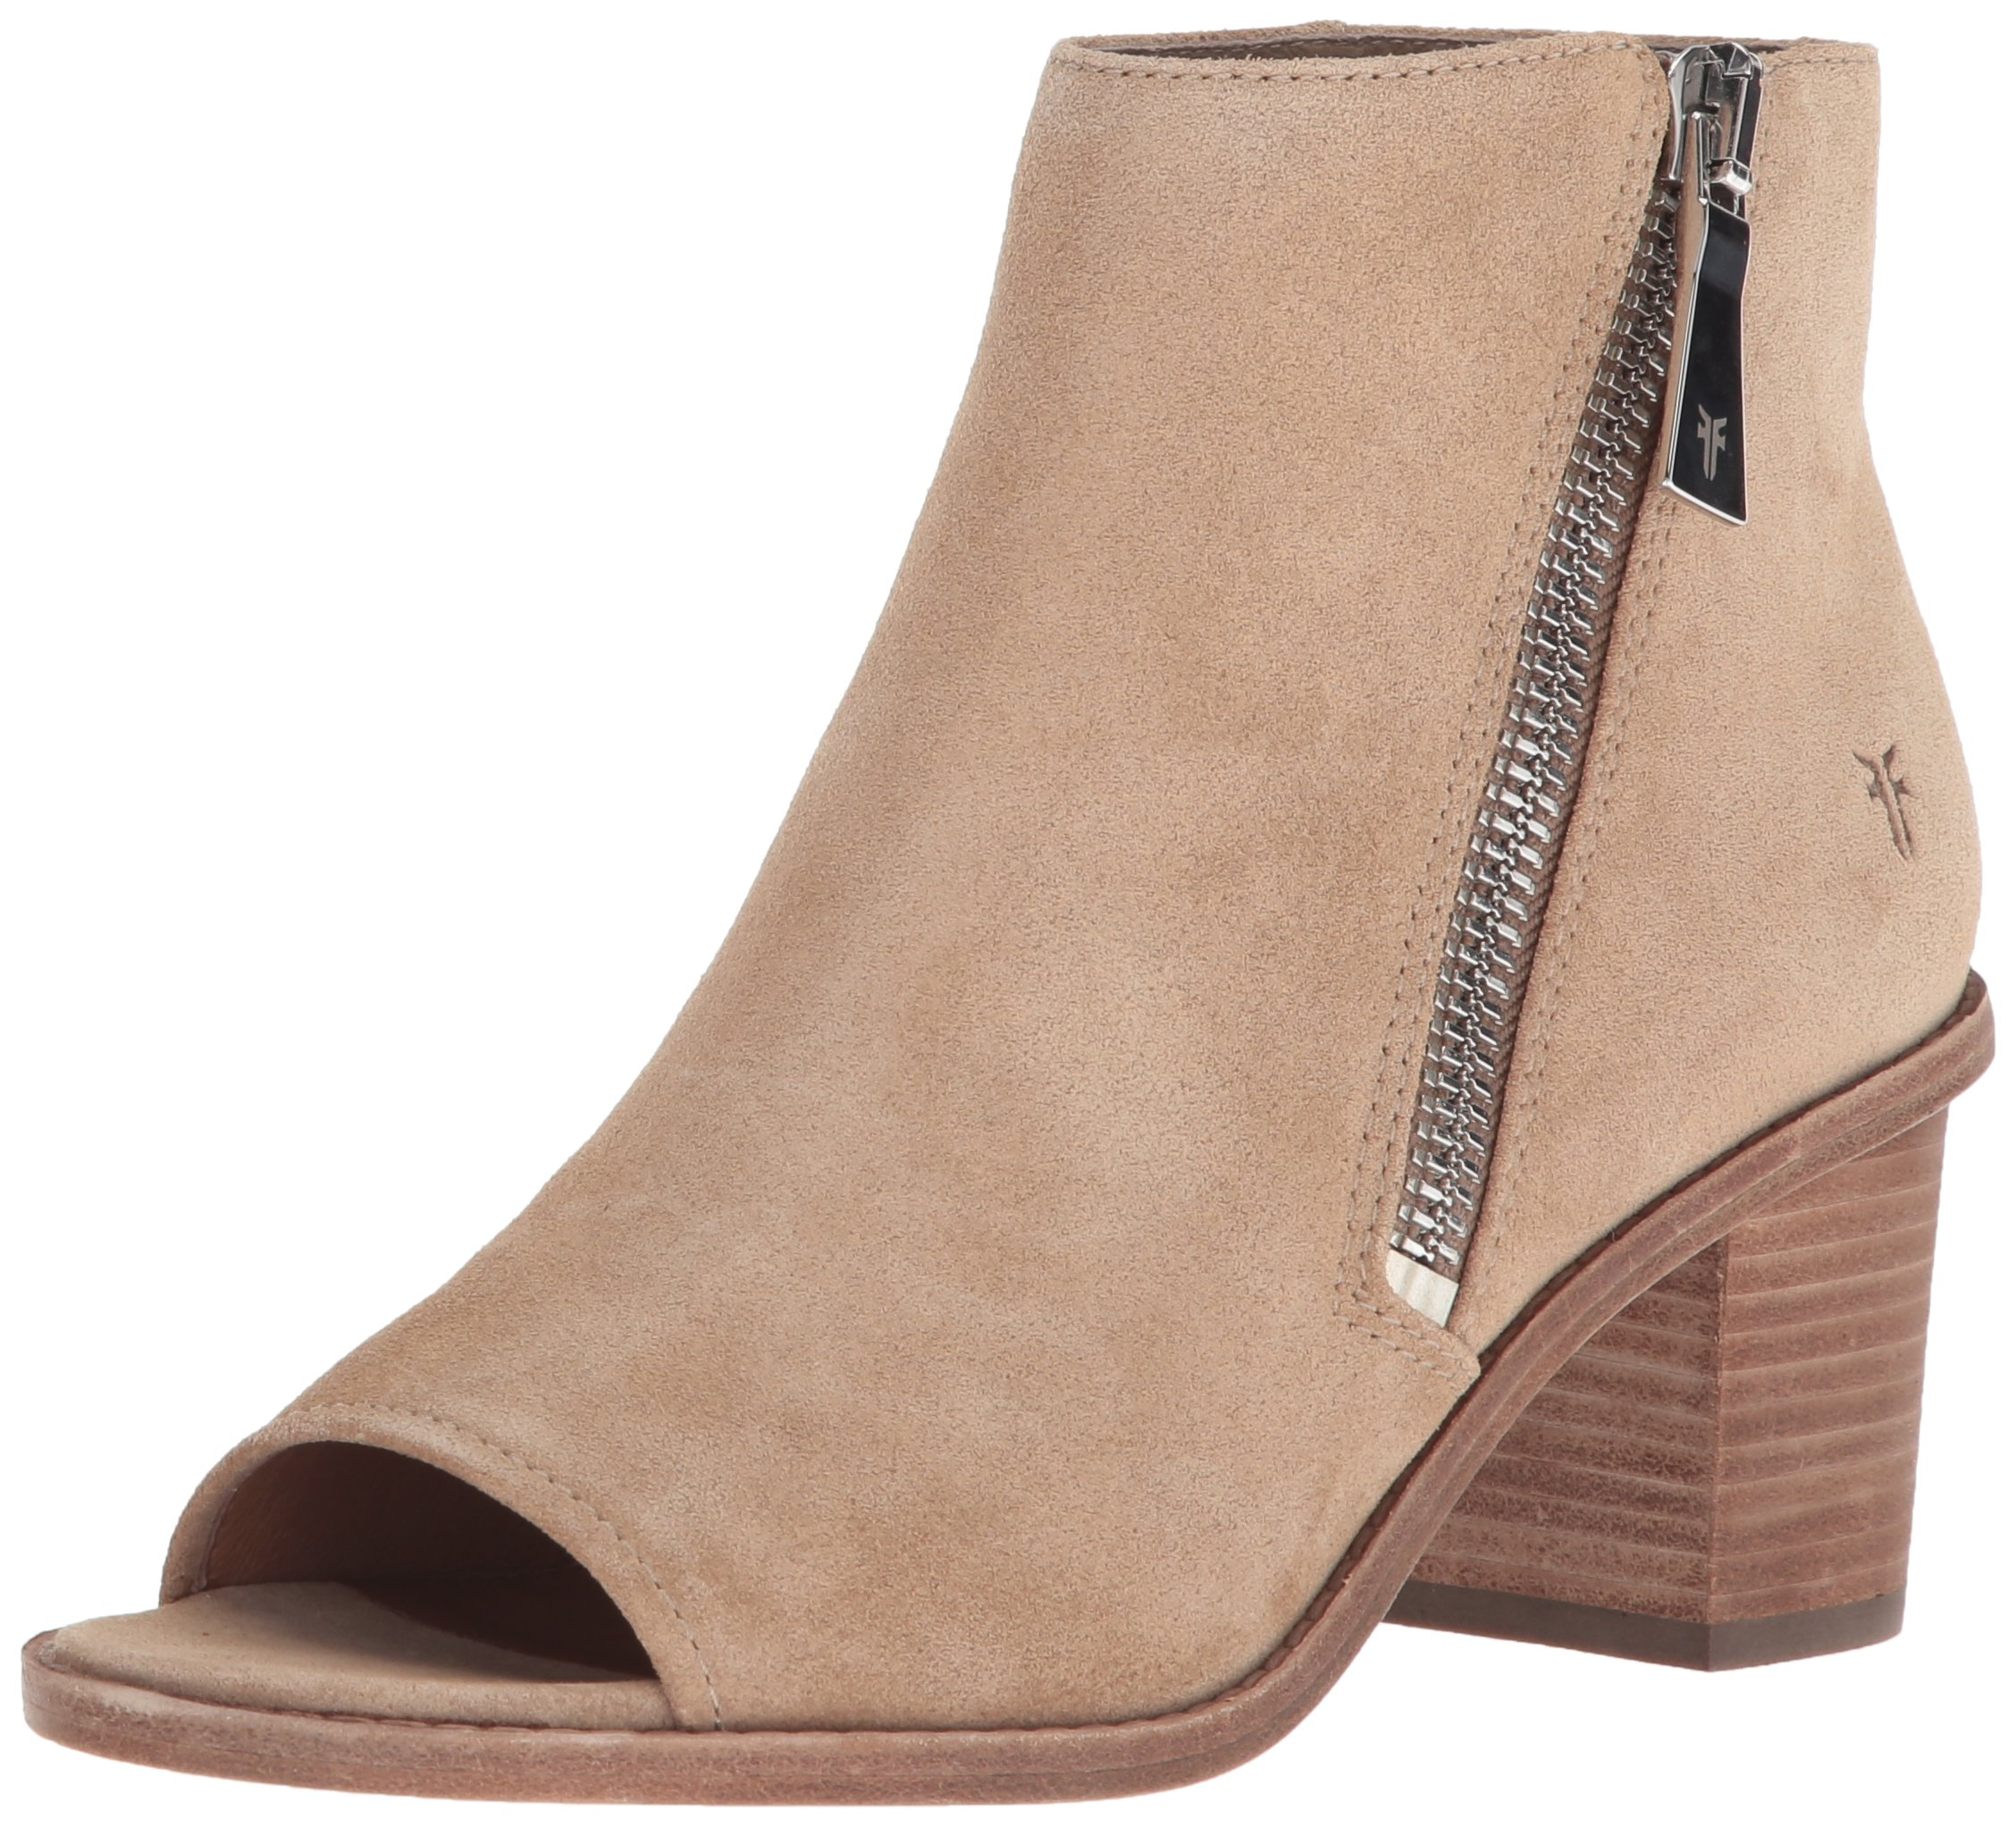 FRYE Women's Brielle Zip Bootie Ankle Boot, Beige, 7 M US